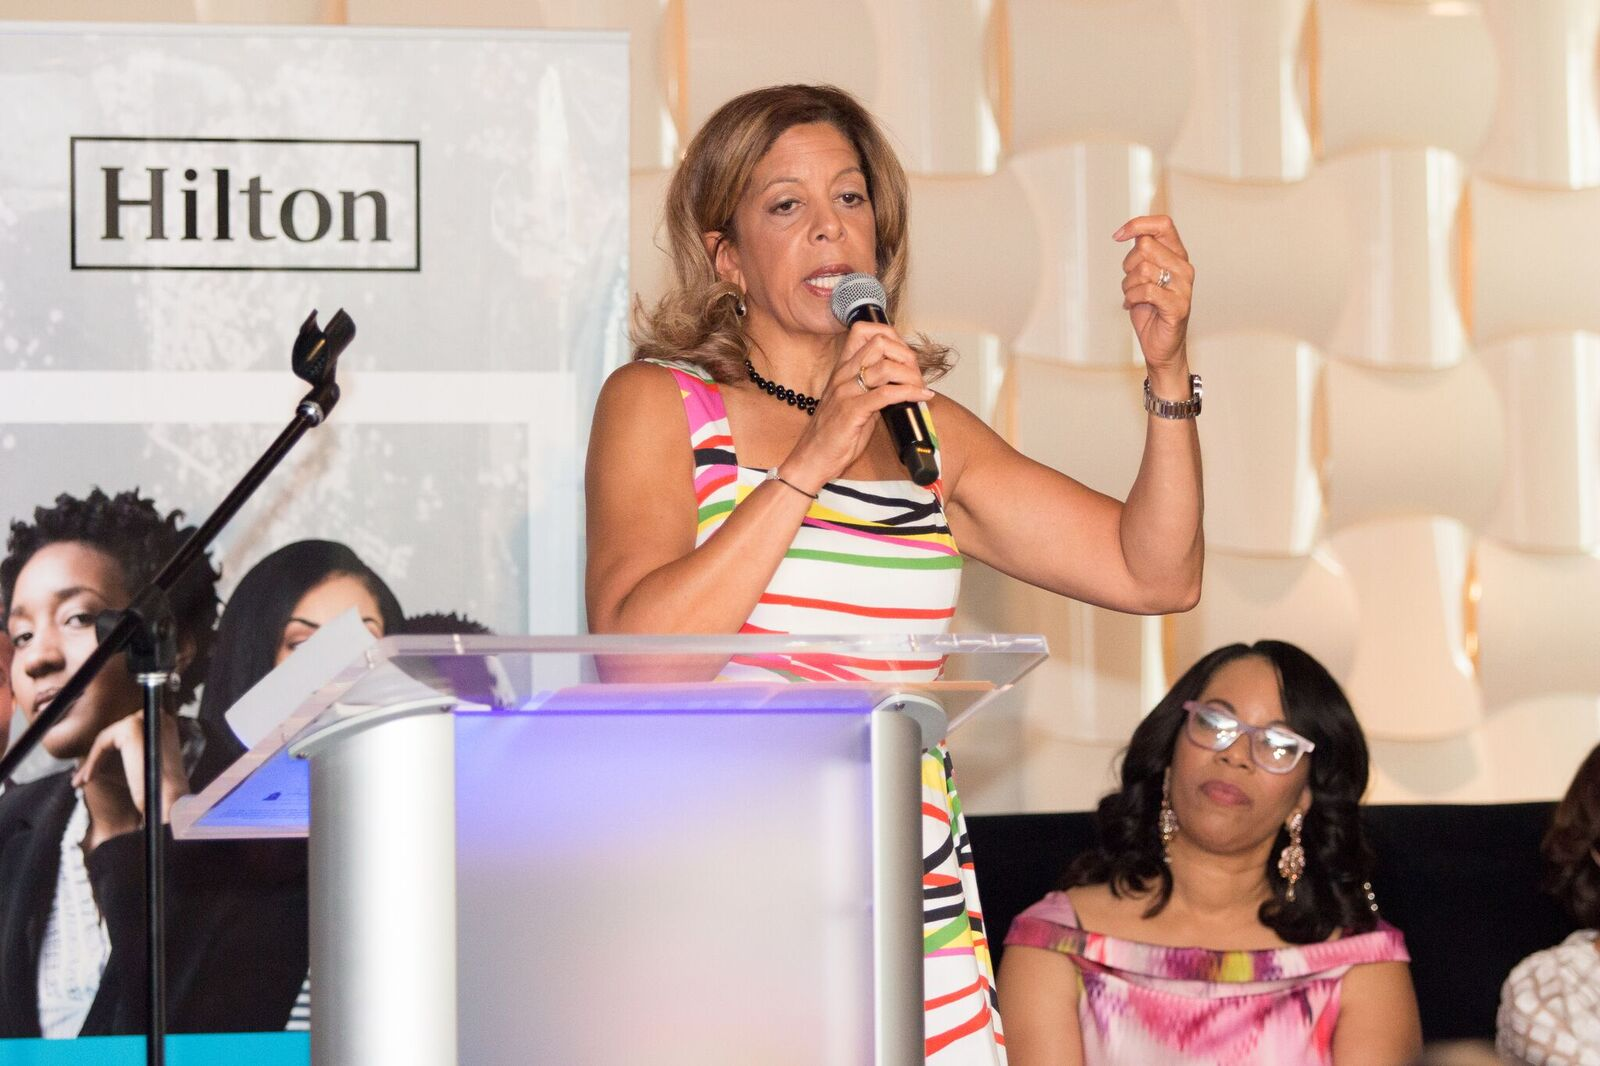 Hilton Partners With Non-Profit To Inspire Girls & Women!